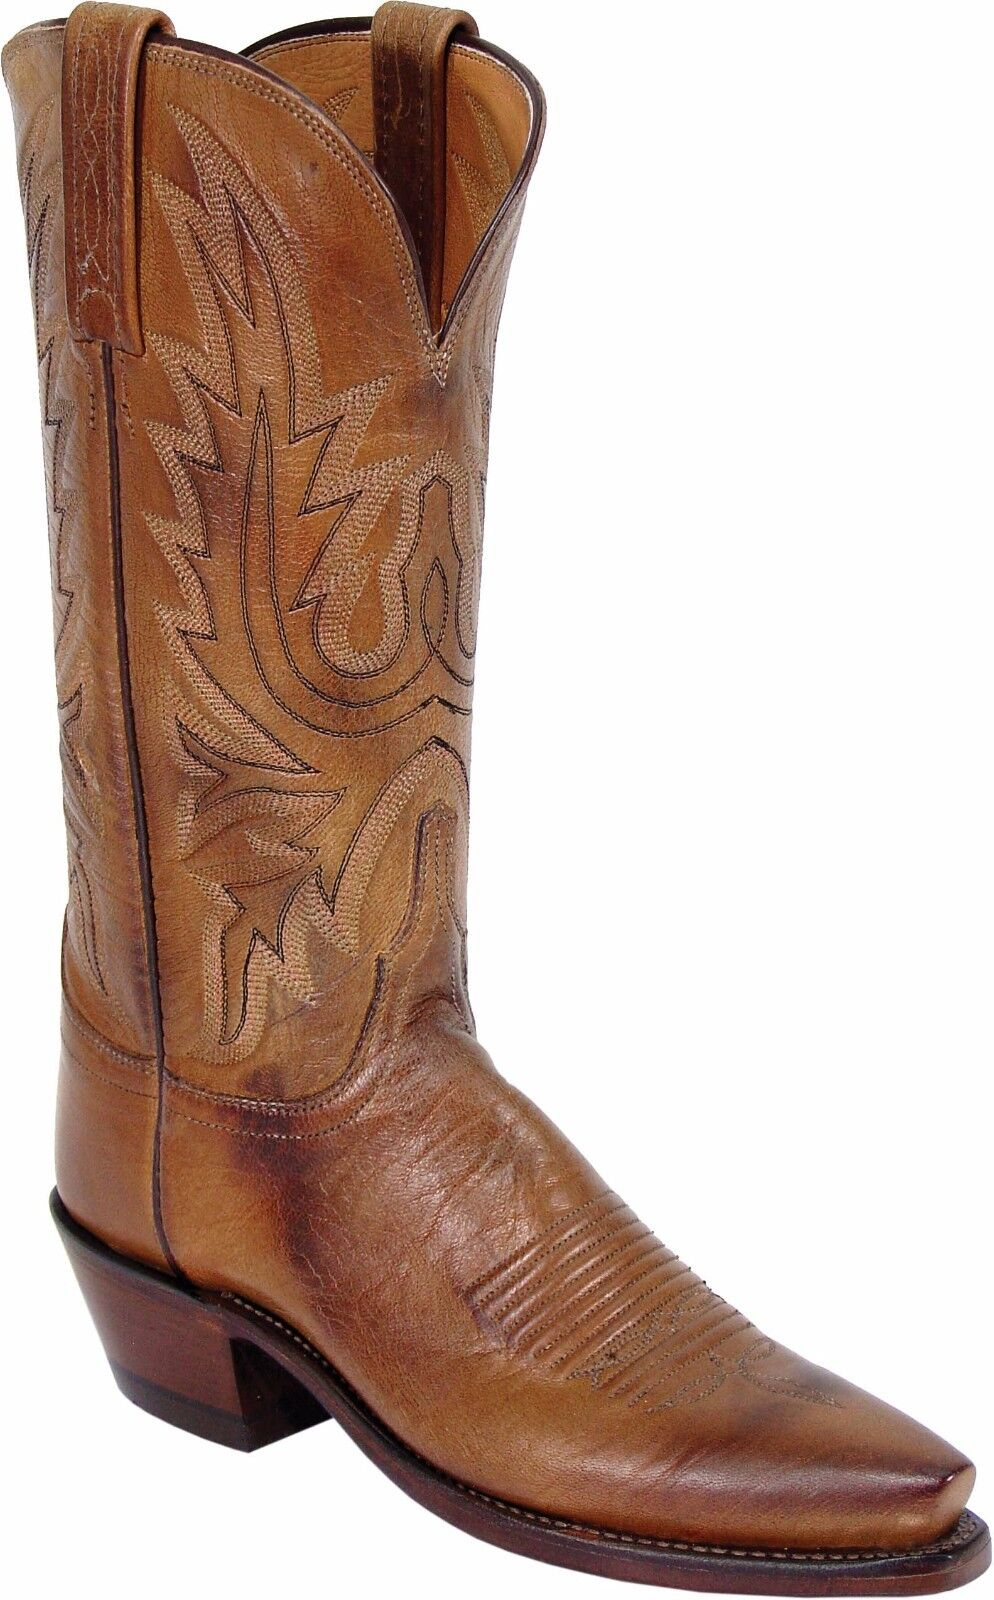 Lucchese N4540 N4540 Lucchese 5/4 Womens Western Boots Tan Burnished Mad Dog Goat Leather NEW f42249